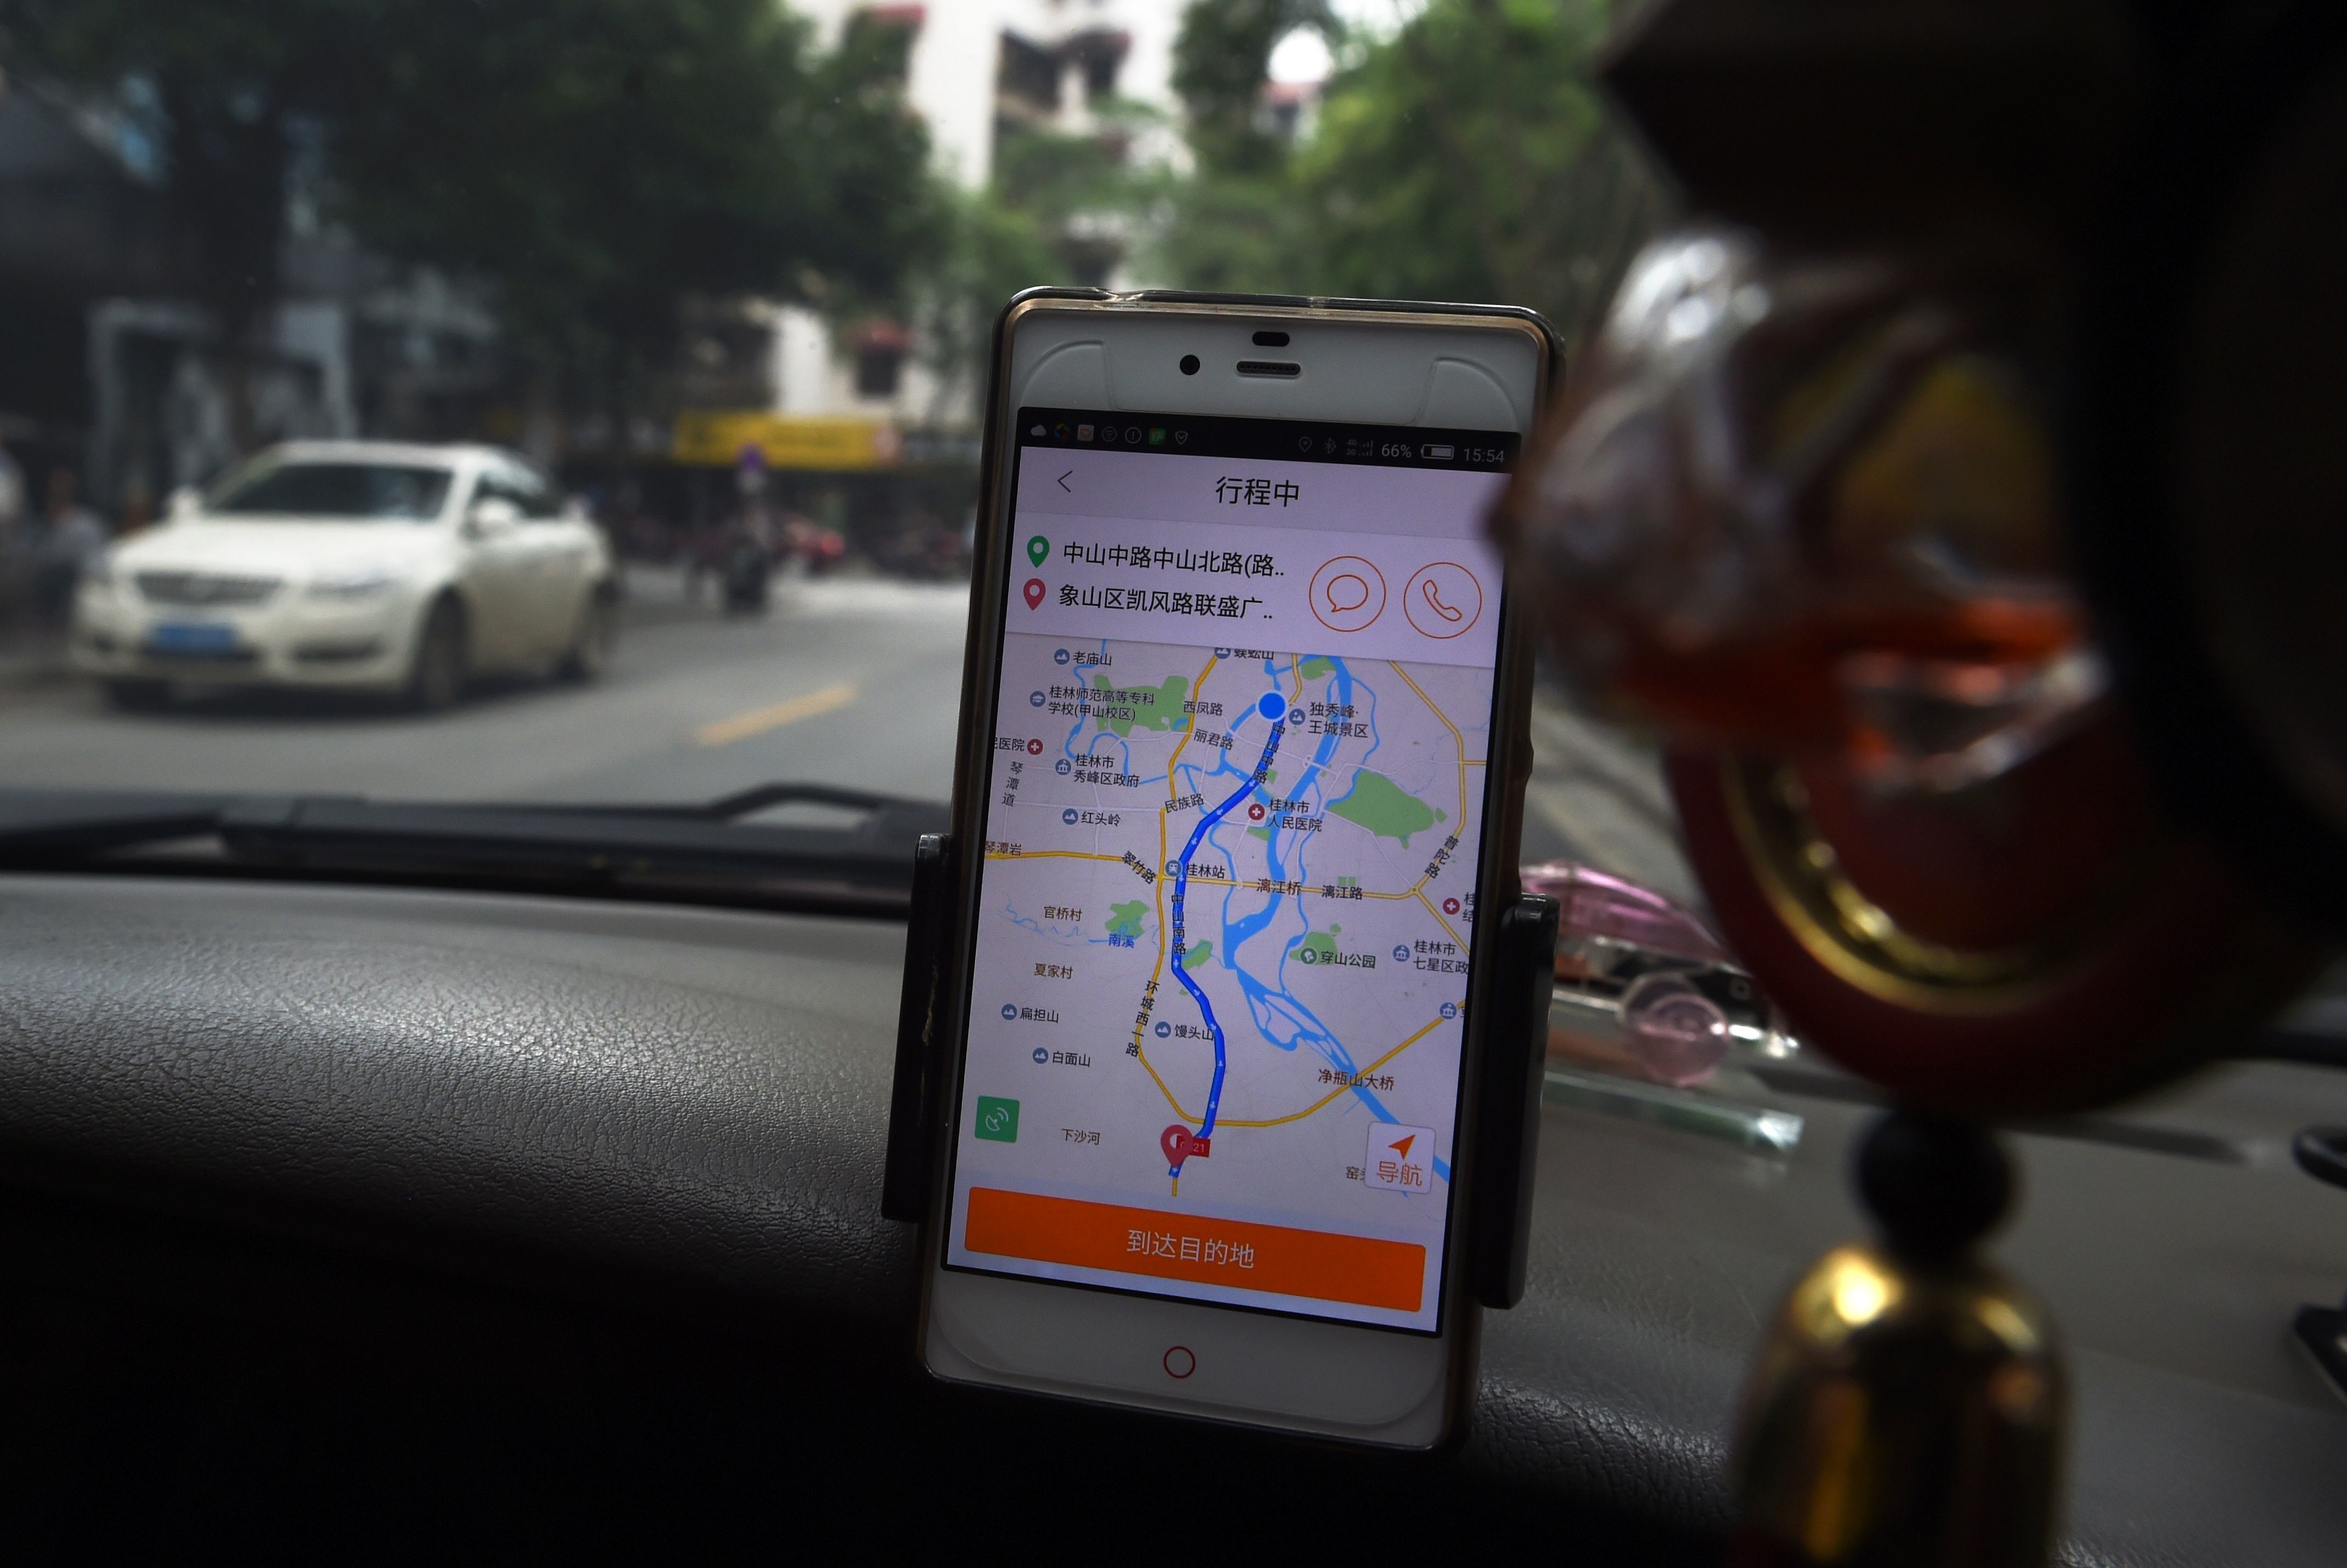 A taxi driver uses the Didi Chuxing app while driving along a street in Guilin, in China's southern Guangxi region on May 13, 2016. Apple has invested 1 billion USD in Chinese ride hailing app Didi Chuxing, the Beijing company said on May 13, as it vies with bitter US-based rival Uber for market share in China. / AFP / GREG BAKER        (Photo credit should read GREG BAKER/AFP/Getty Images)